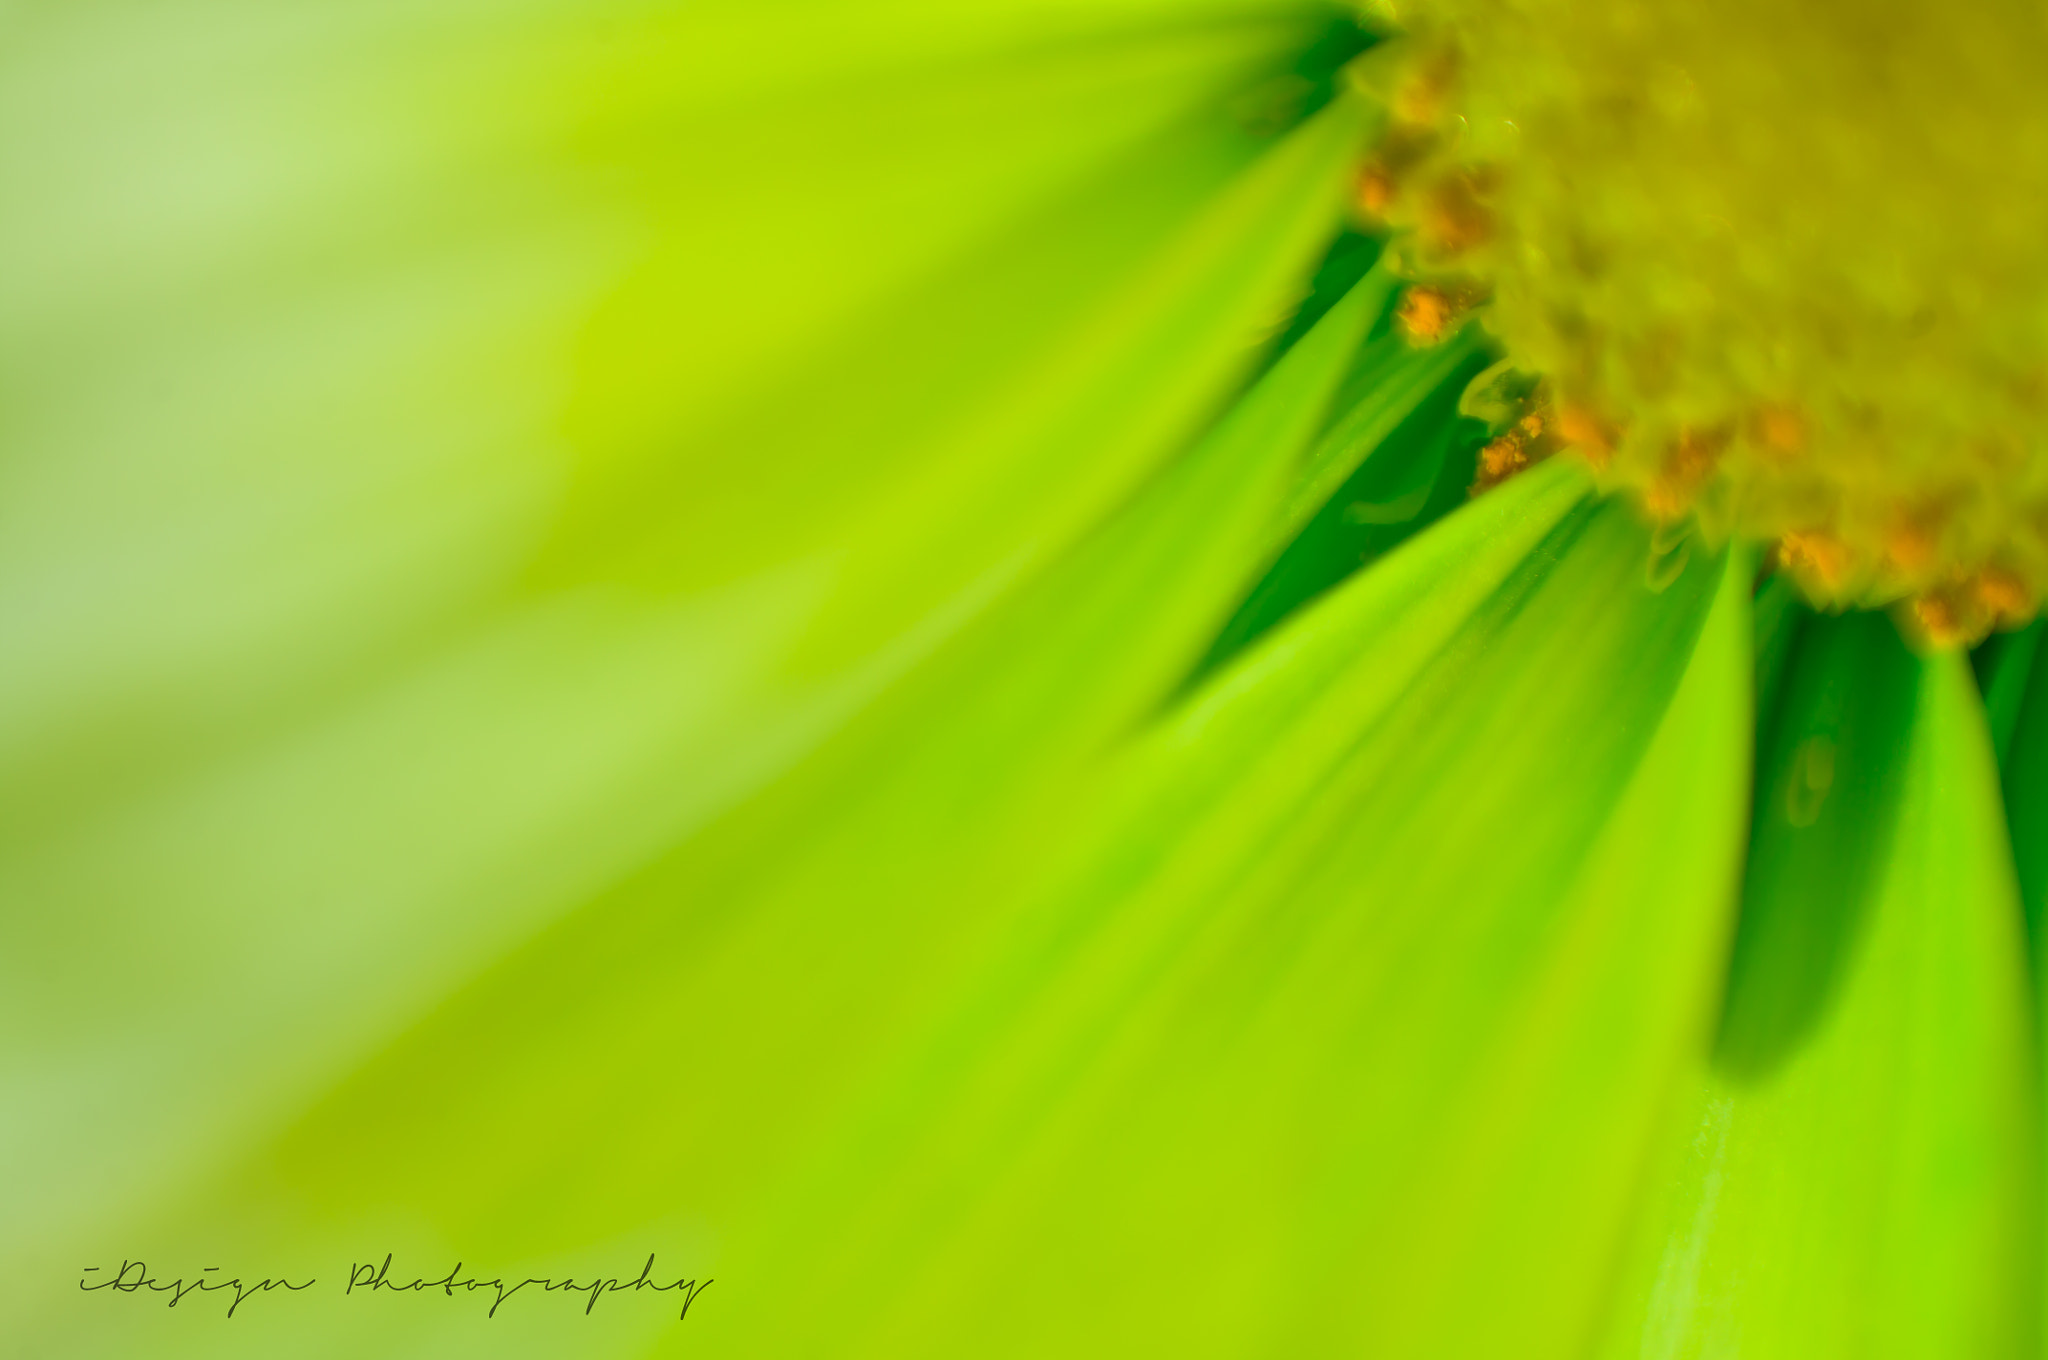 Photograph Chrysanthemum by Kevin Schmunk on 500px